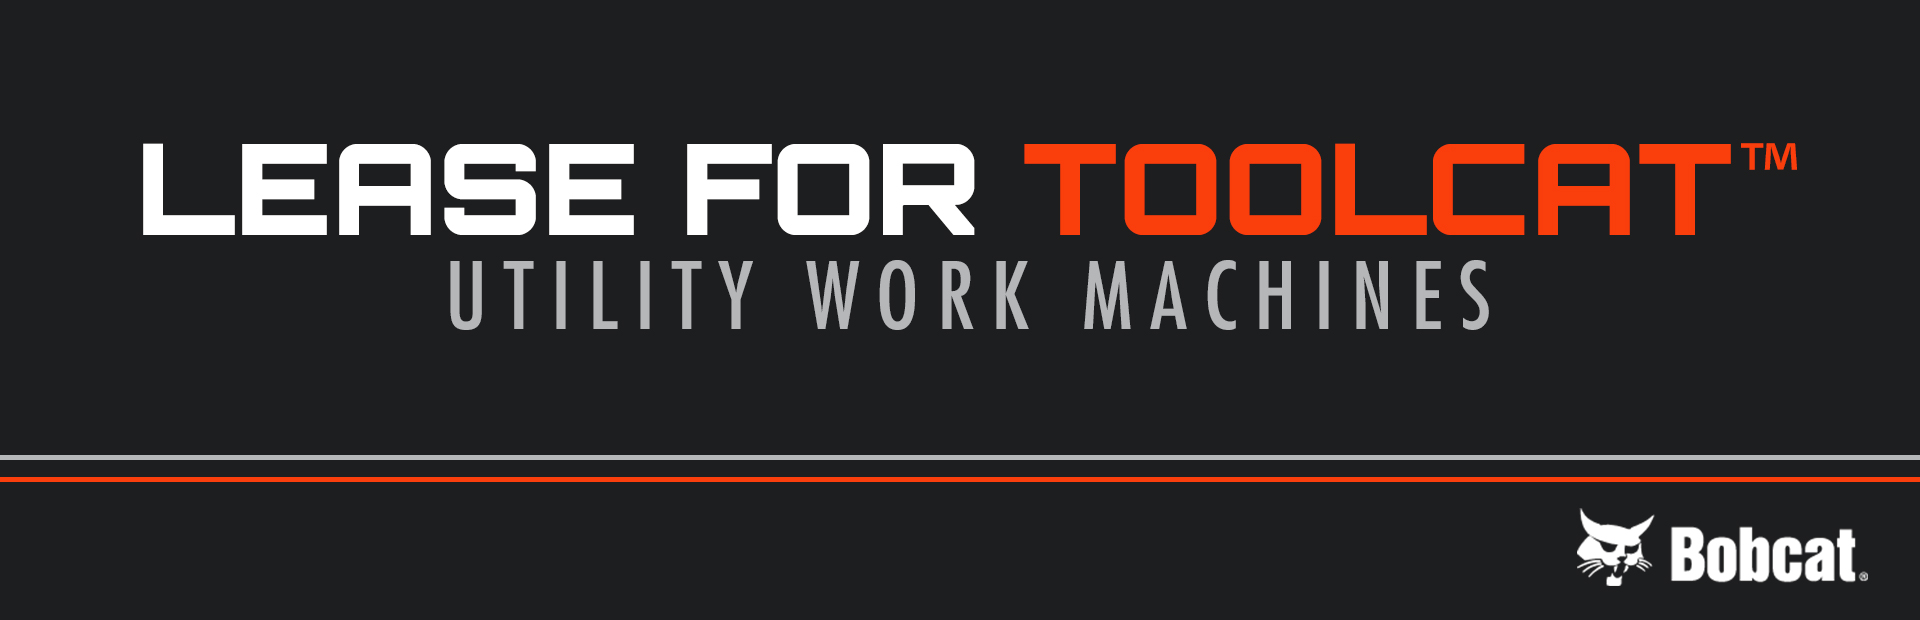 Bobcat: Lease for Toolcat™ Utility Work Machines